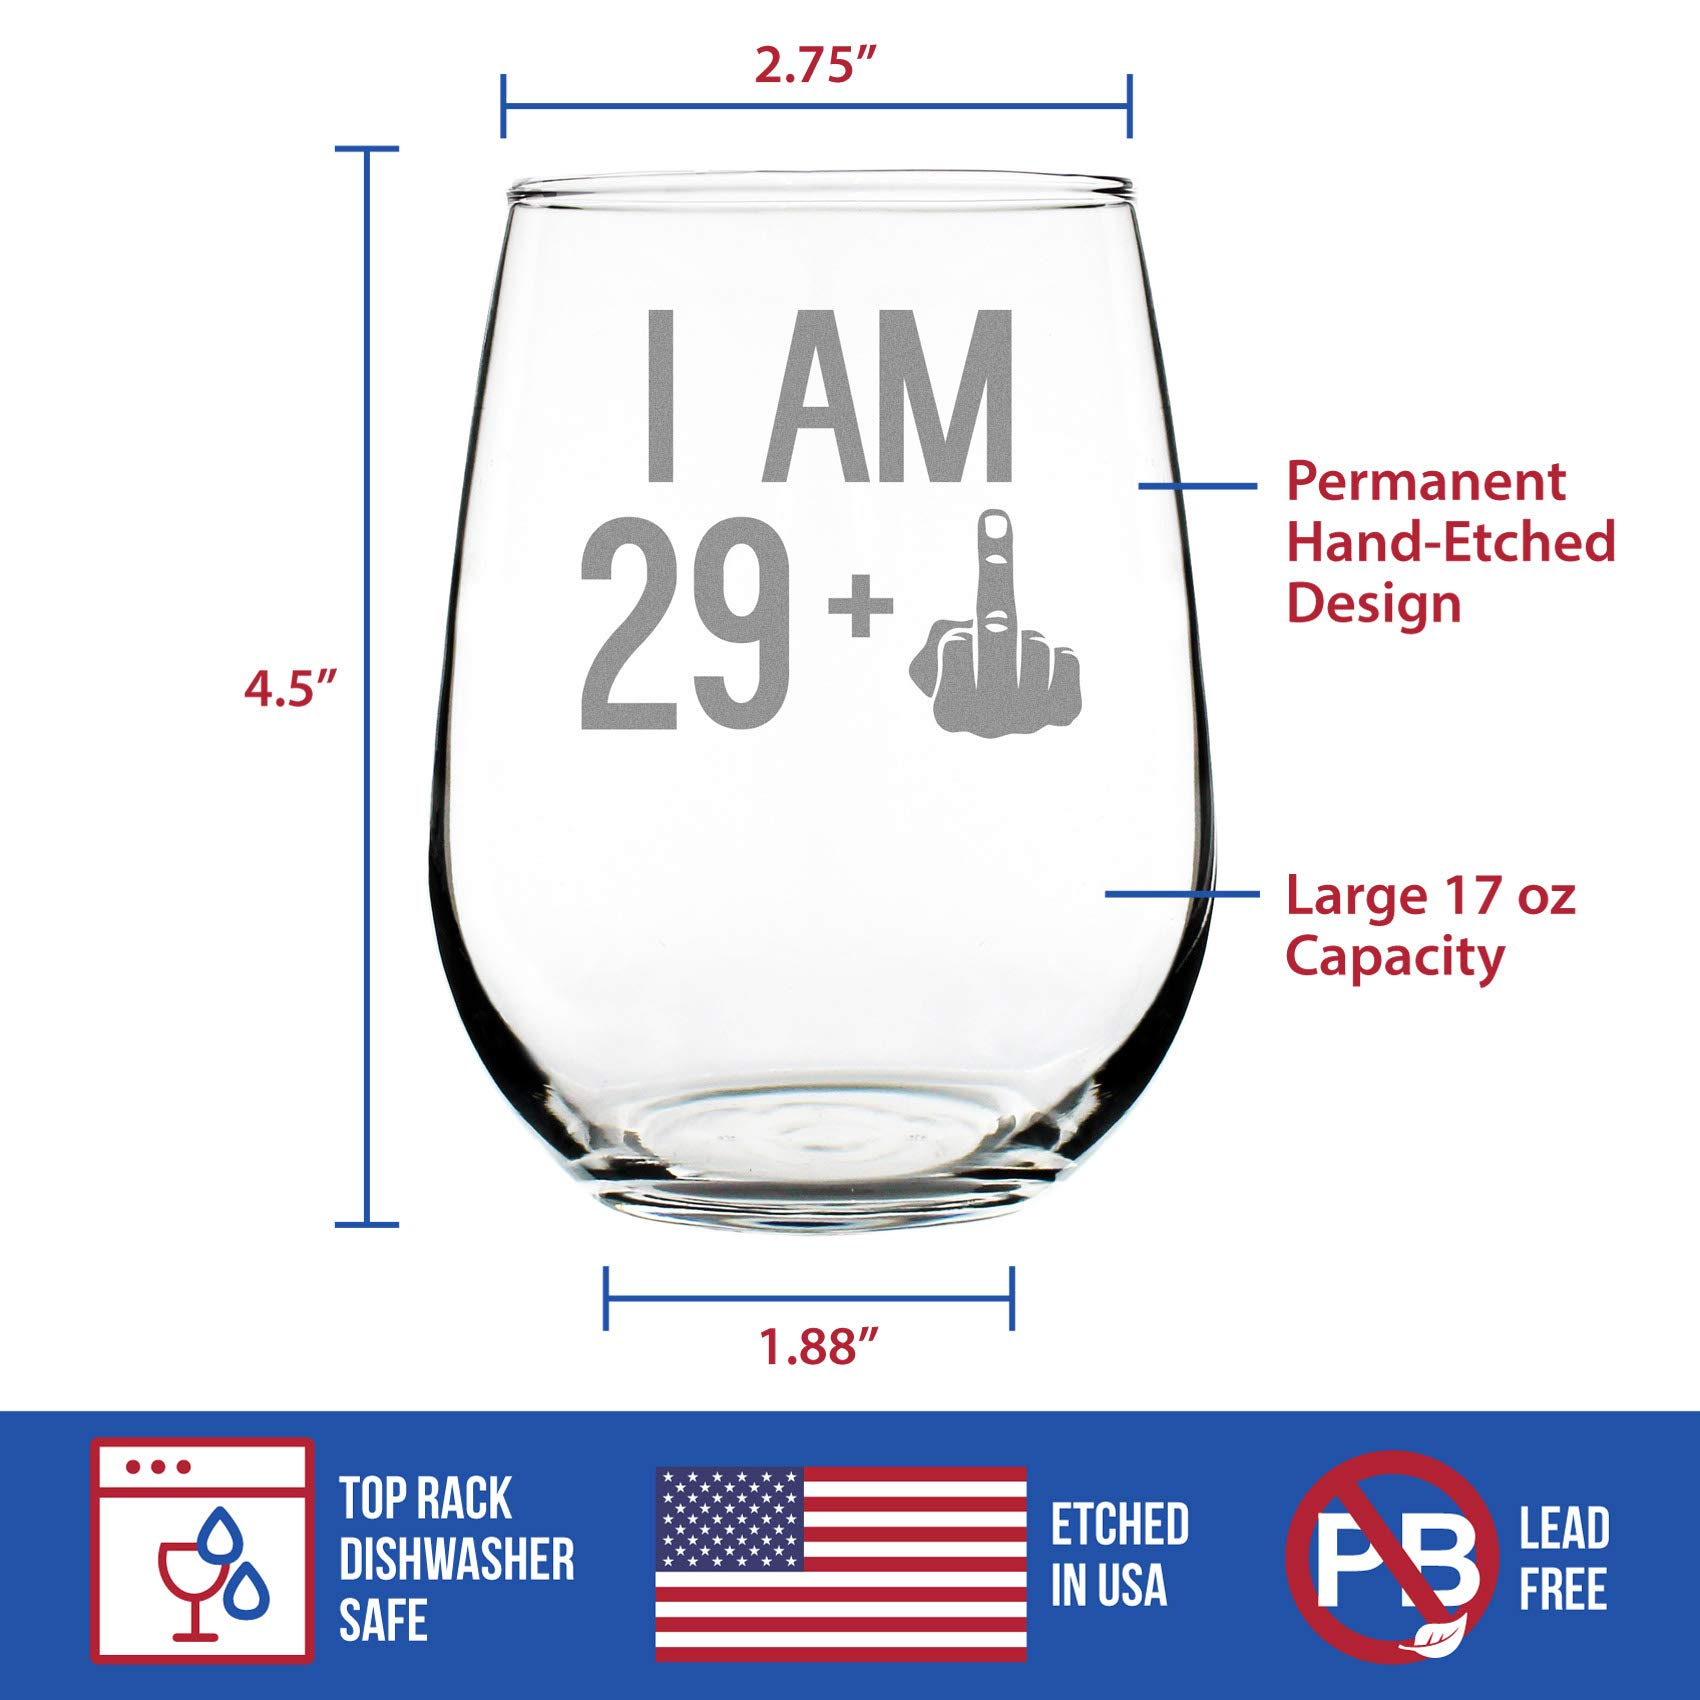 29 + One Middle Finger | 30th Birthday Stemless Wine Glass for Women & Men | Cute Funny Wine Gift Idea | Unique Personalized Bday Glasses for Best Friend Turning 30 | Drinking Party Decoration by Bevvee (Image #4)